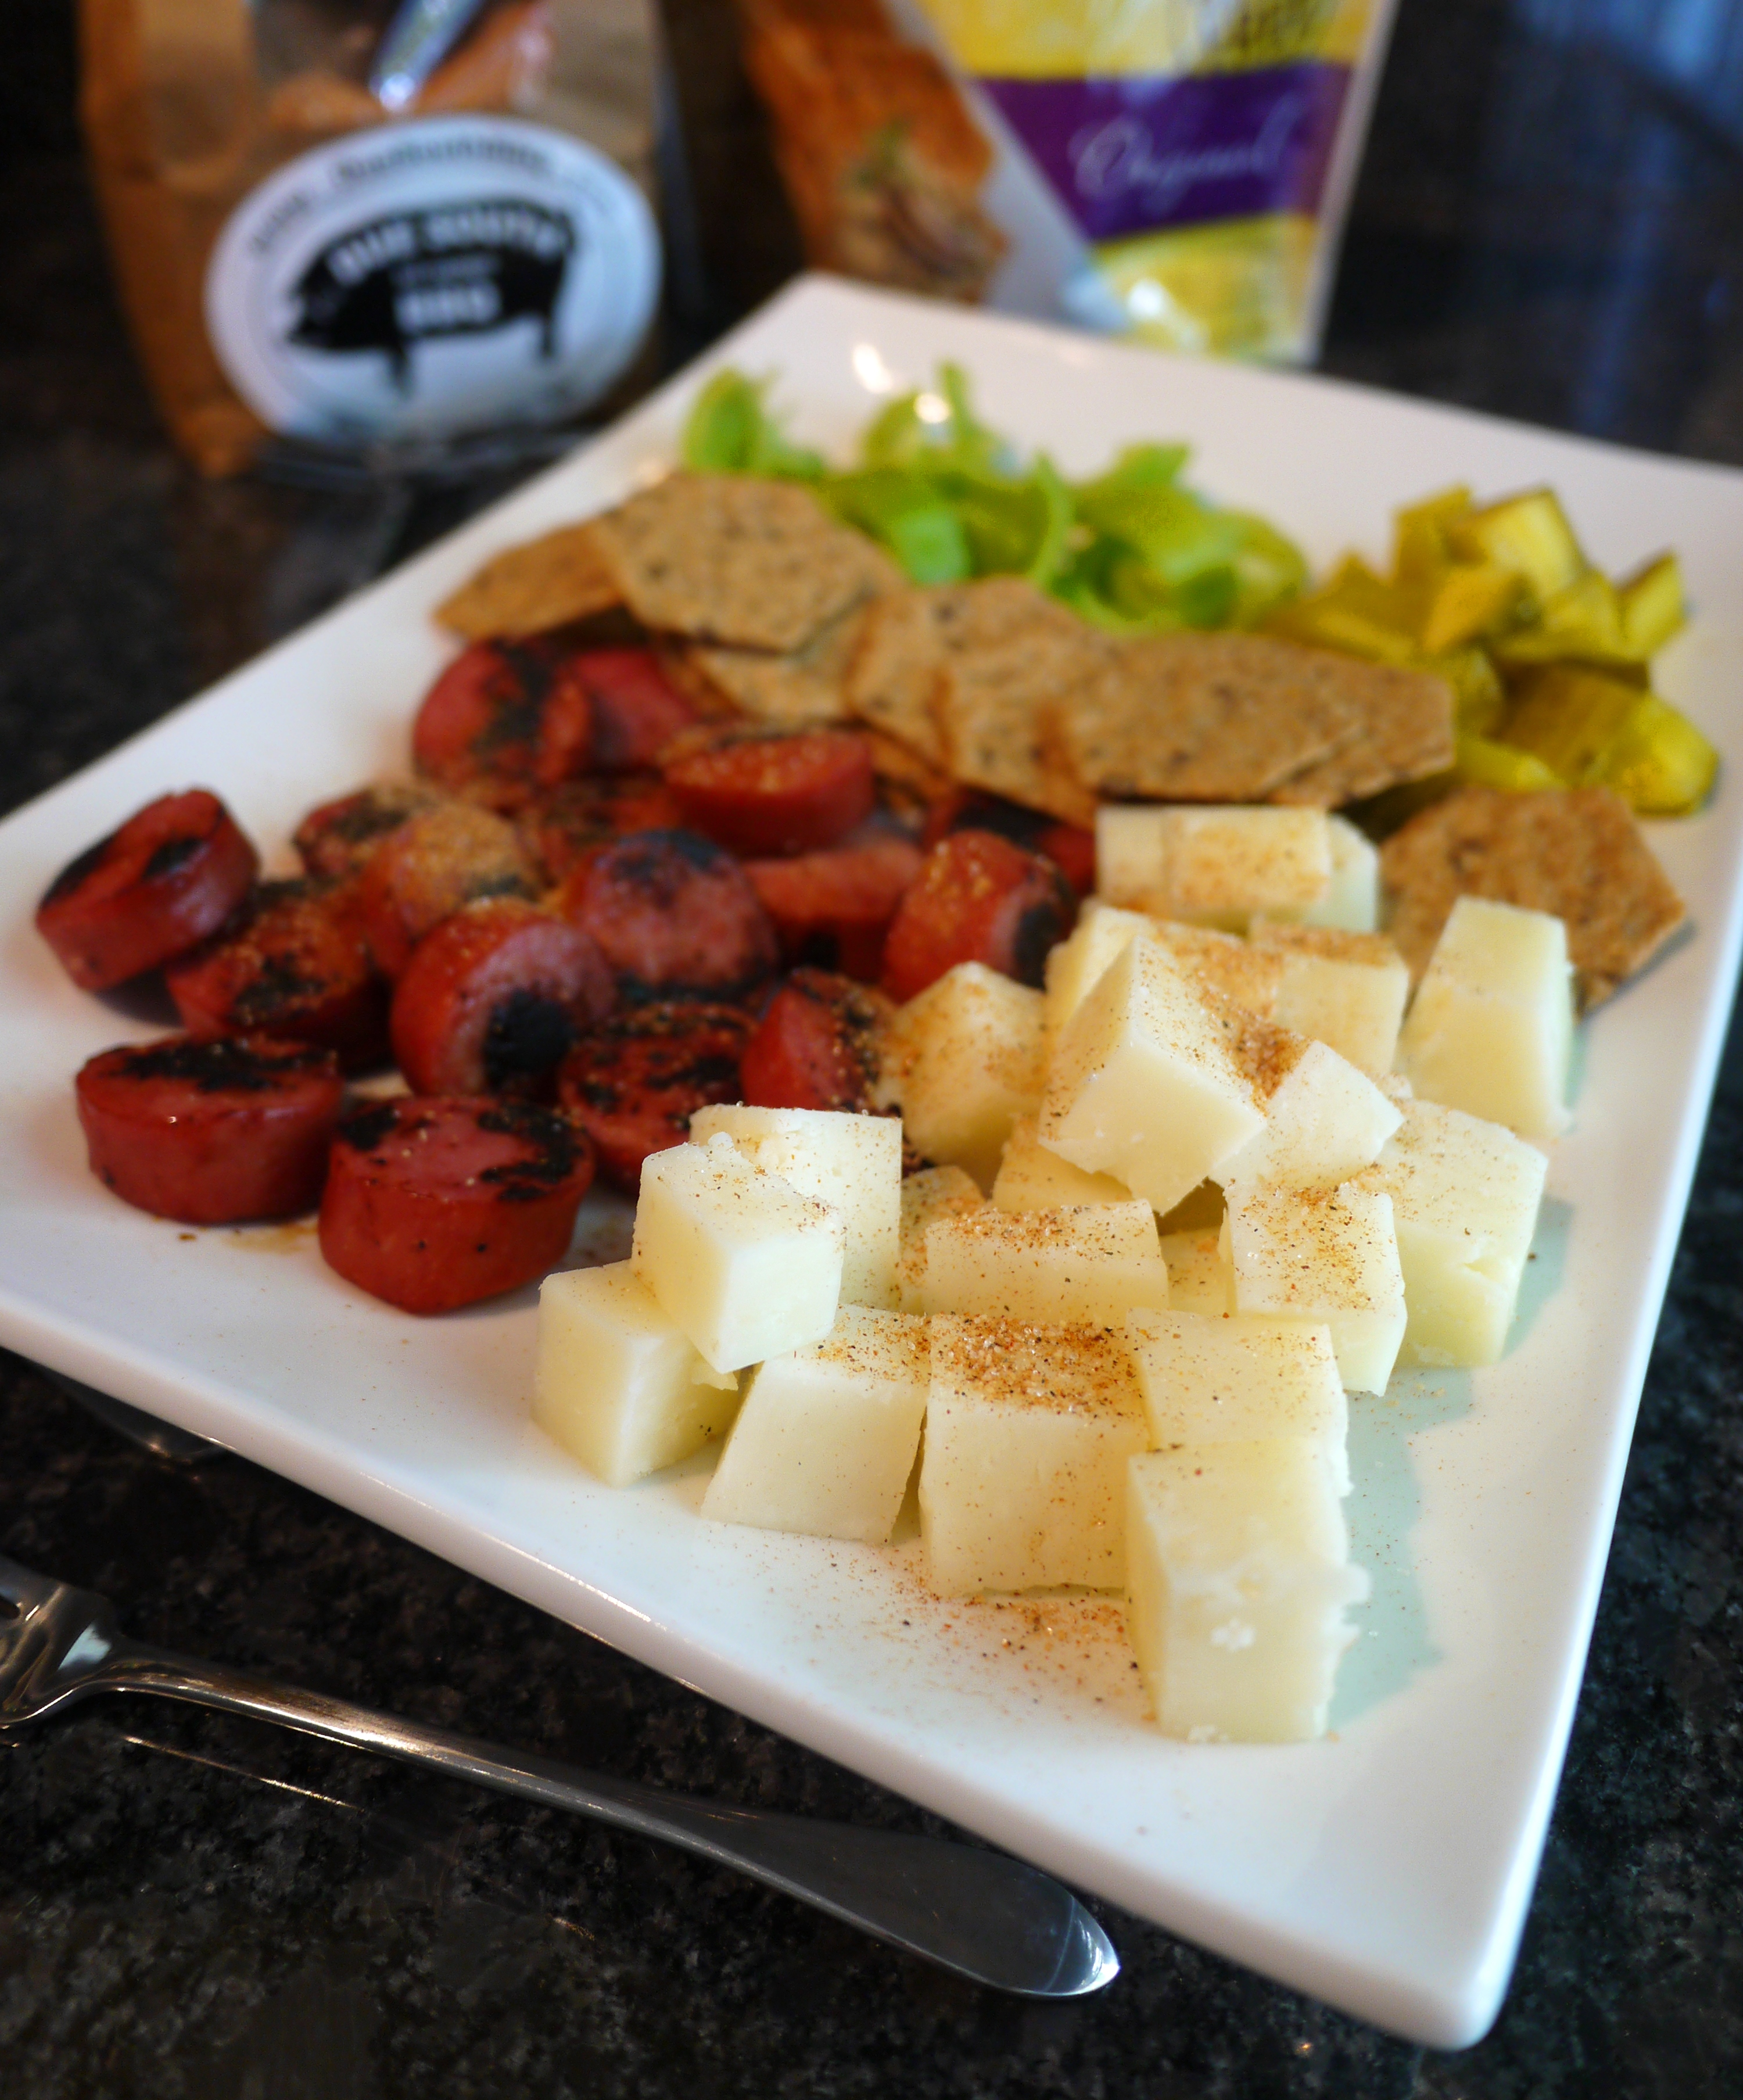 First I swapped in lower-fat turkey sausage for the regular sausage. Honestly once you brush the sausage with the BBQ sauce sauté it up and top it ... & Memphis Makeover: Sausage and Cheese Plate